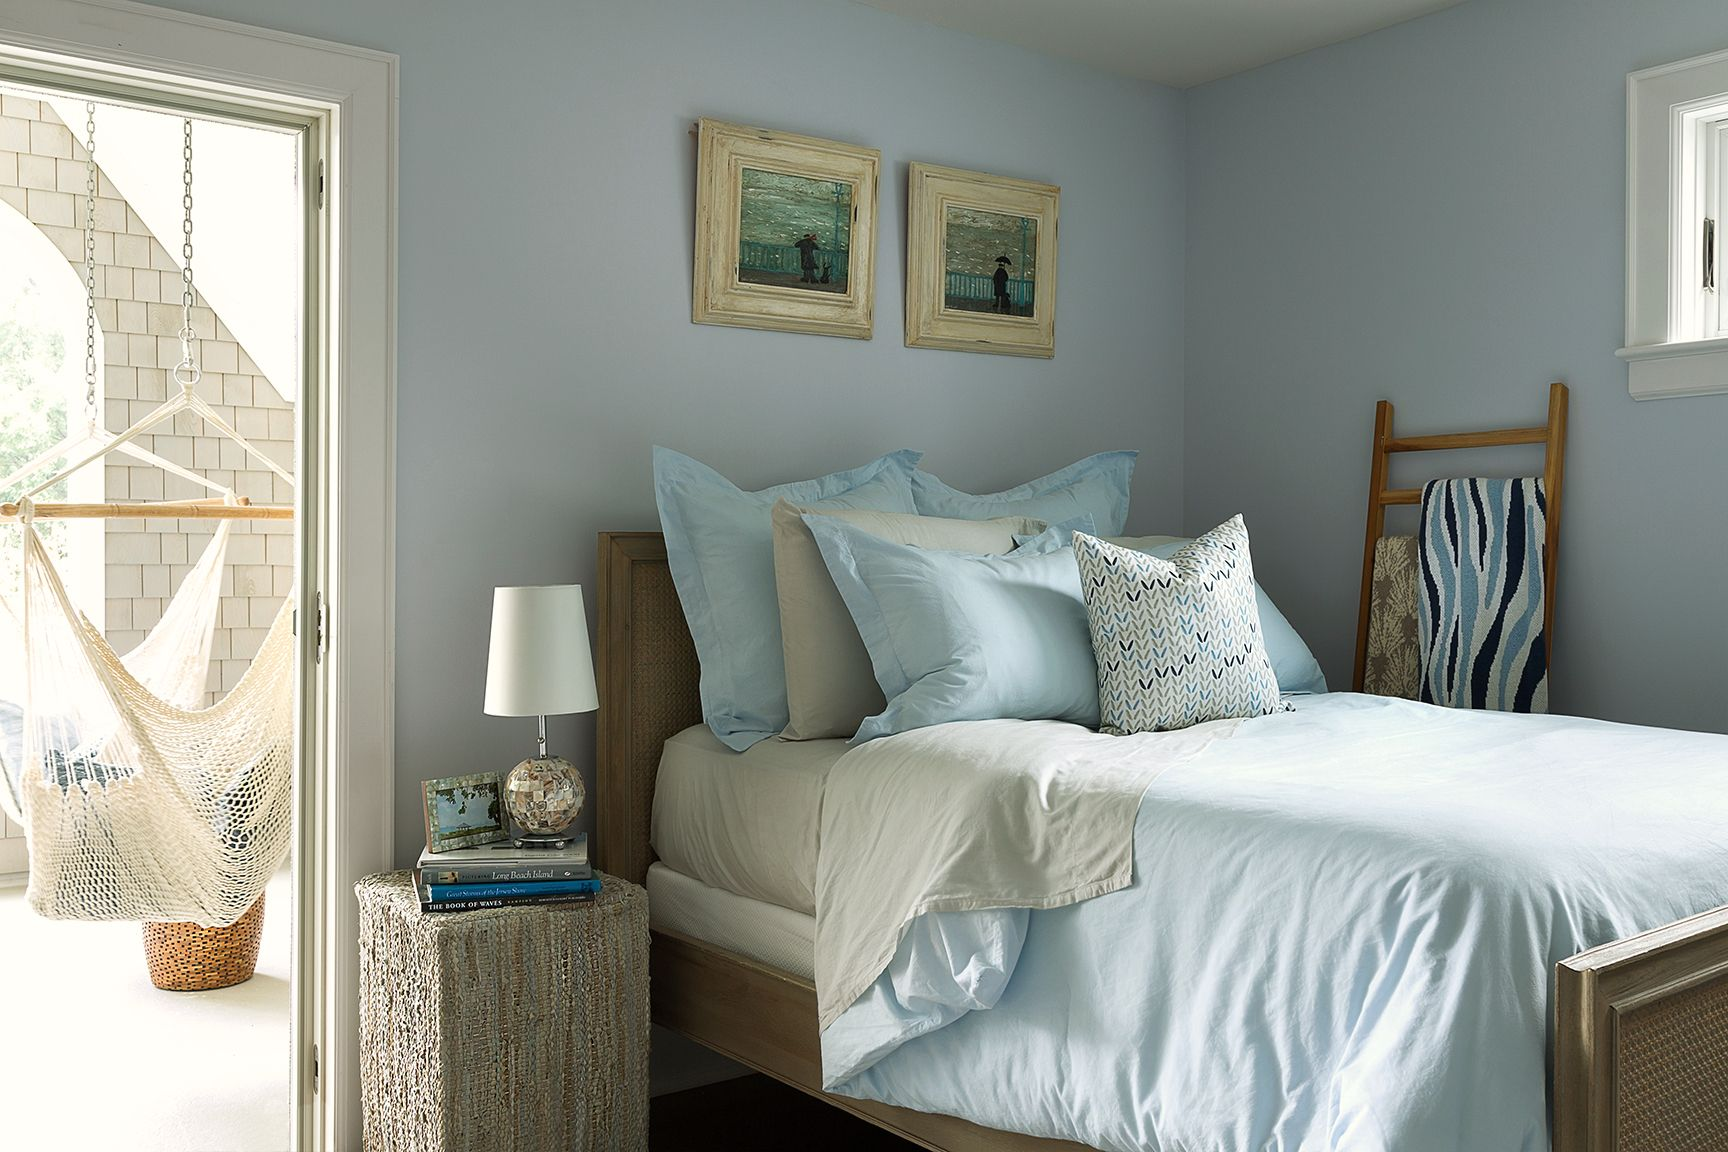 OUR BEDDING IS HANDCRAFTED IN THE USA AND MADE WITH YOU IN